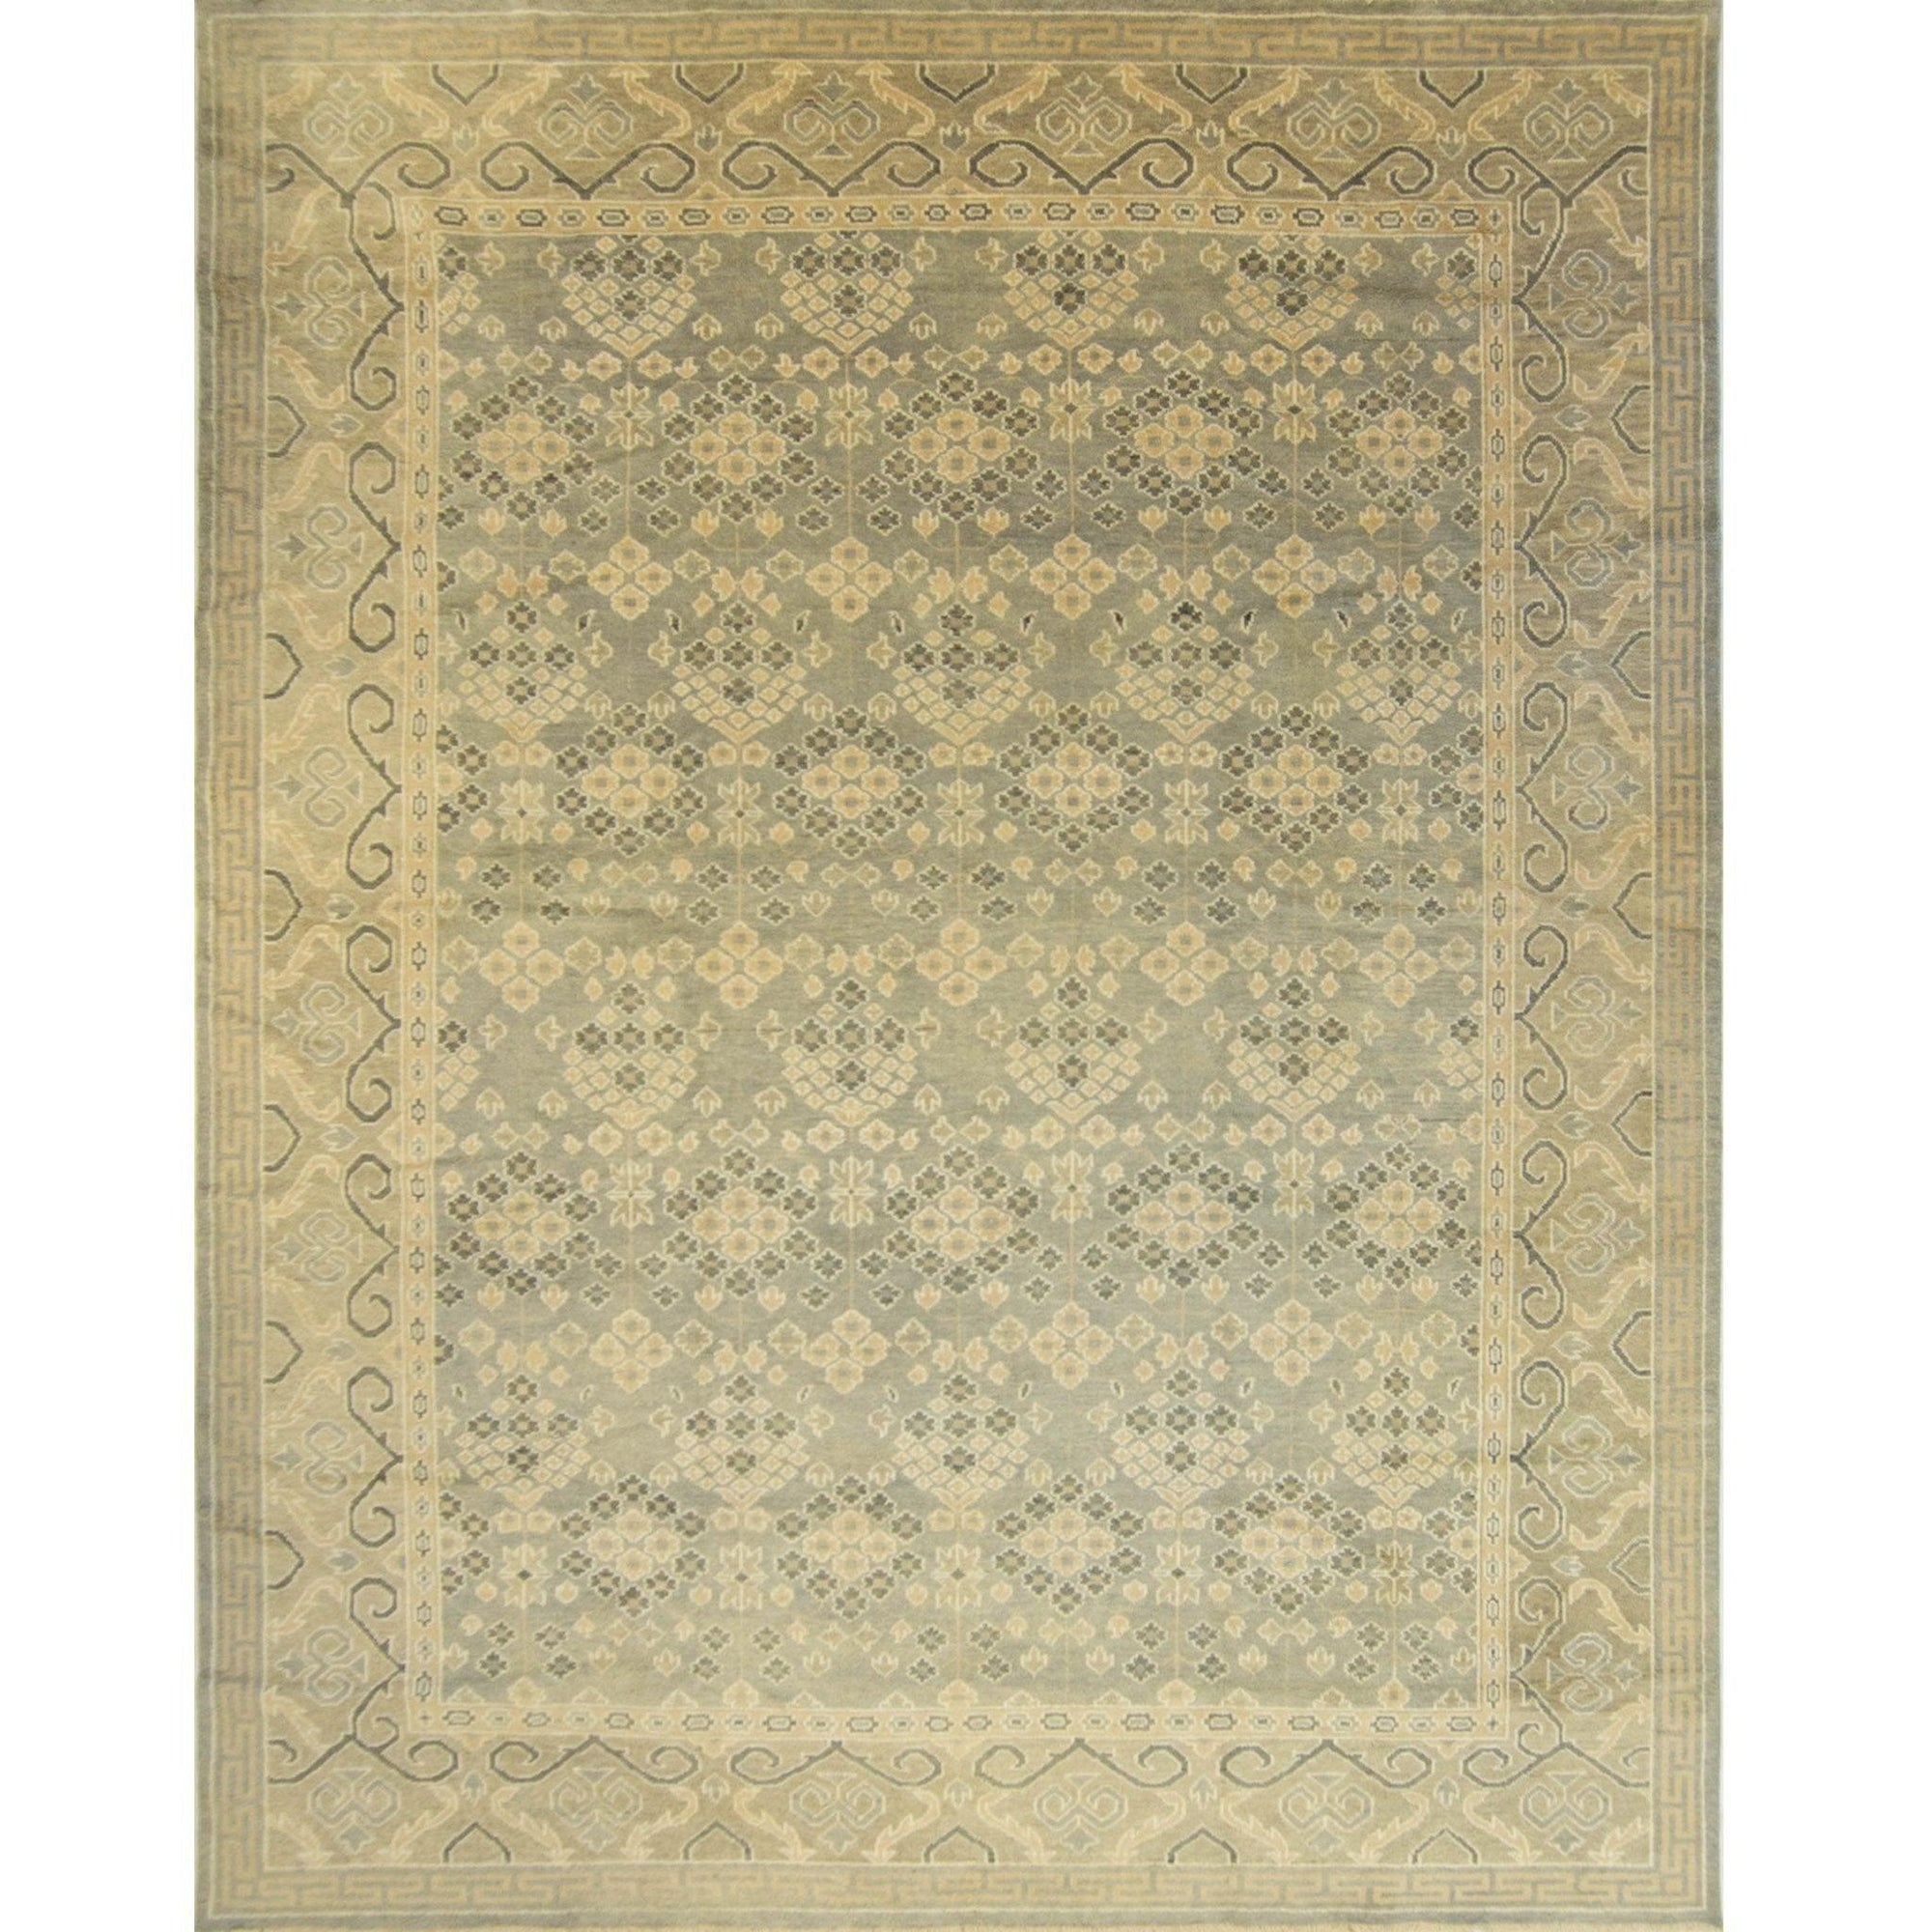 Fine Hand-knotted Contemporary Wool Khothan Rug 307cm x 402cm Persian-Rug | House-of-Haghi | NewMarket | Auckland | NZ | Handmade Persian Rugs | Hand Knotted Persian Rugs